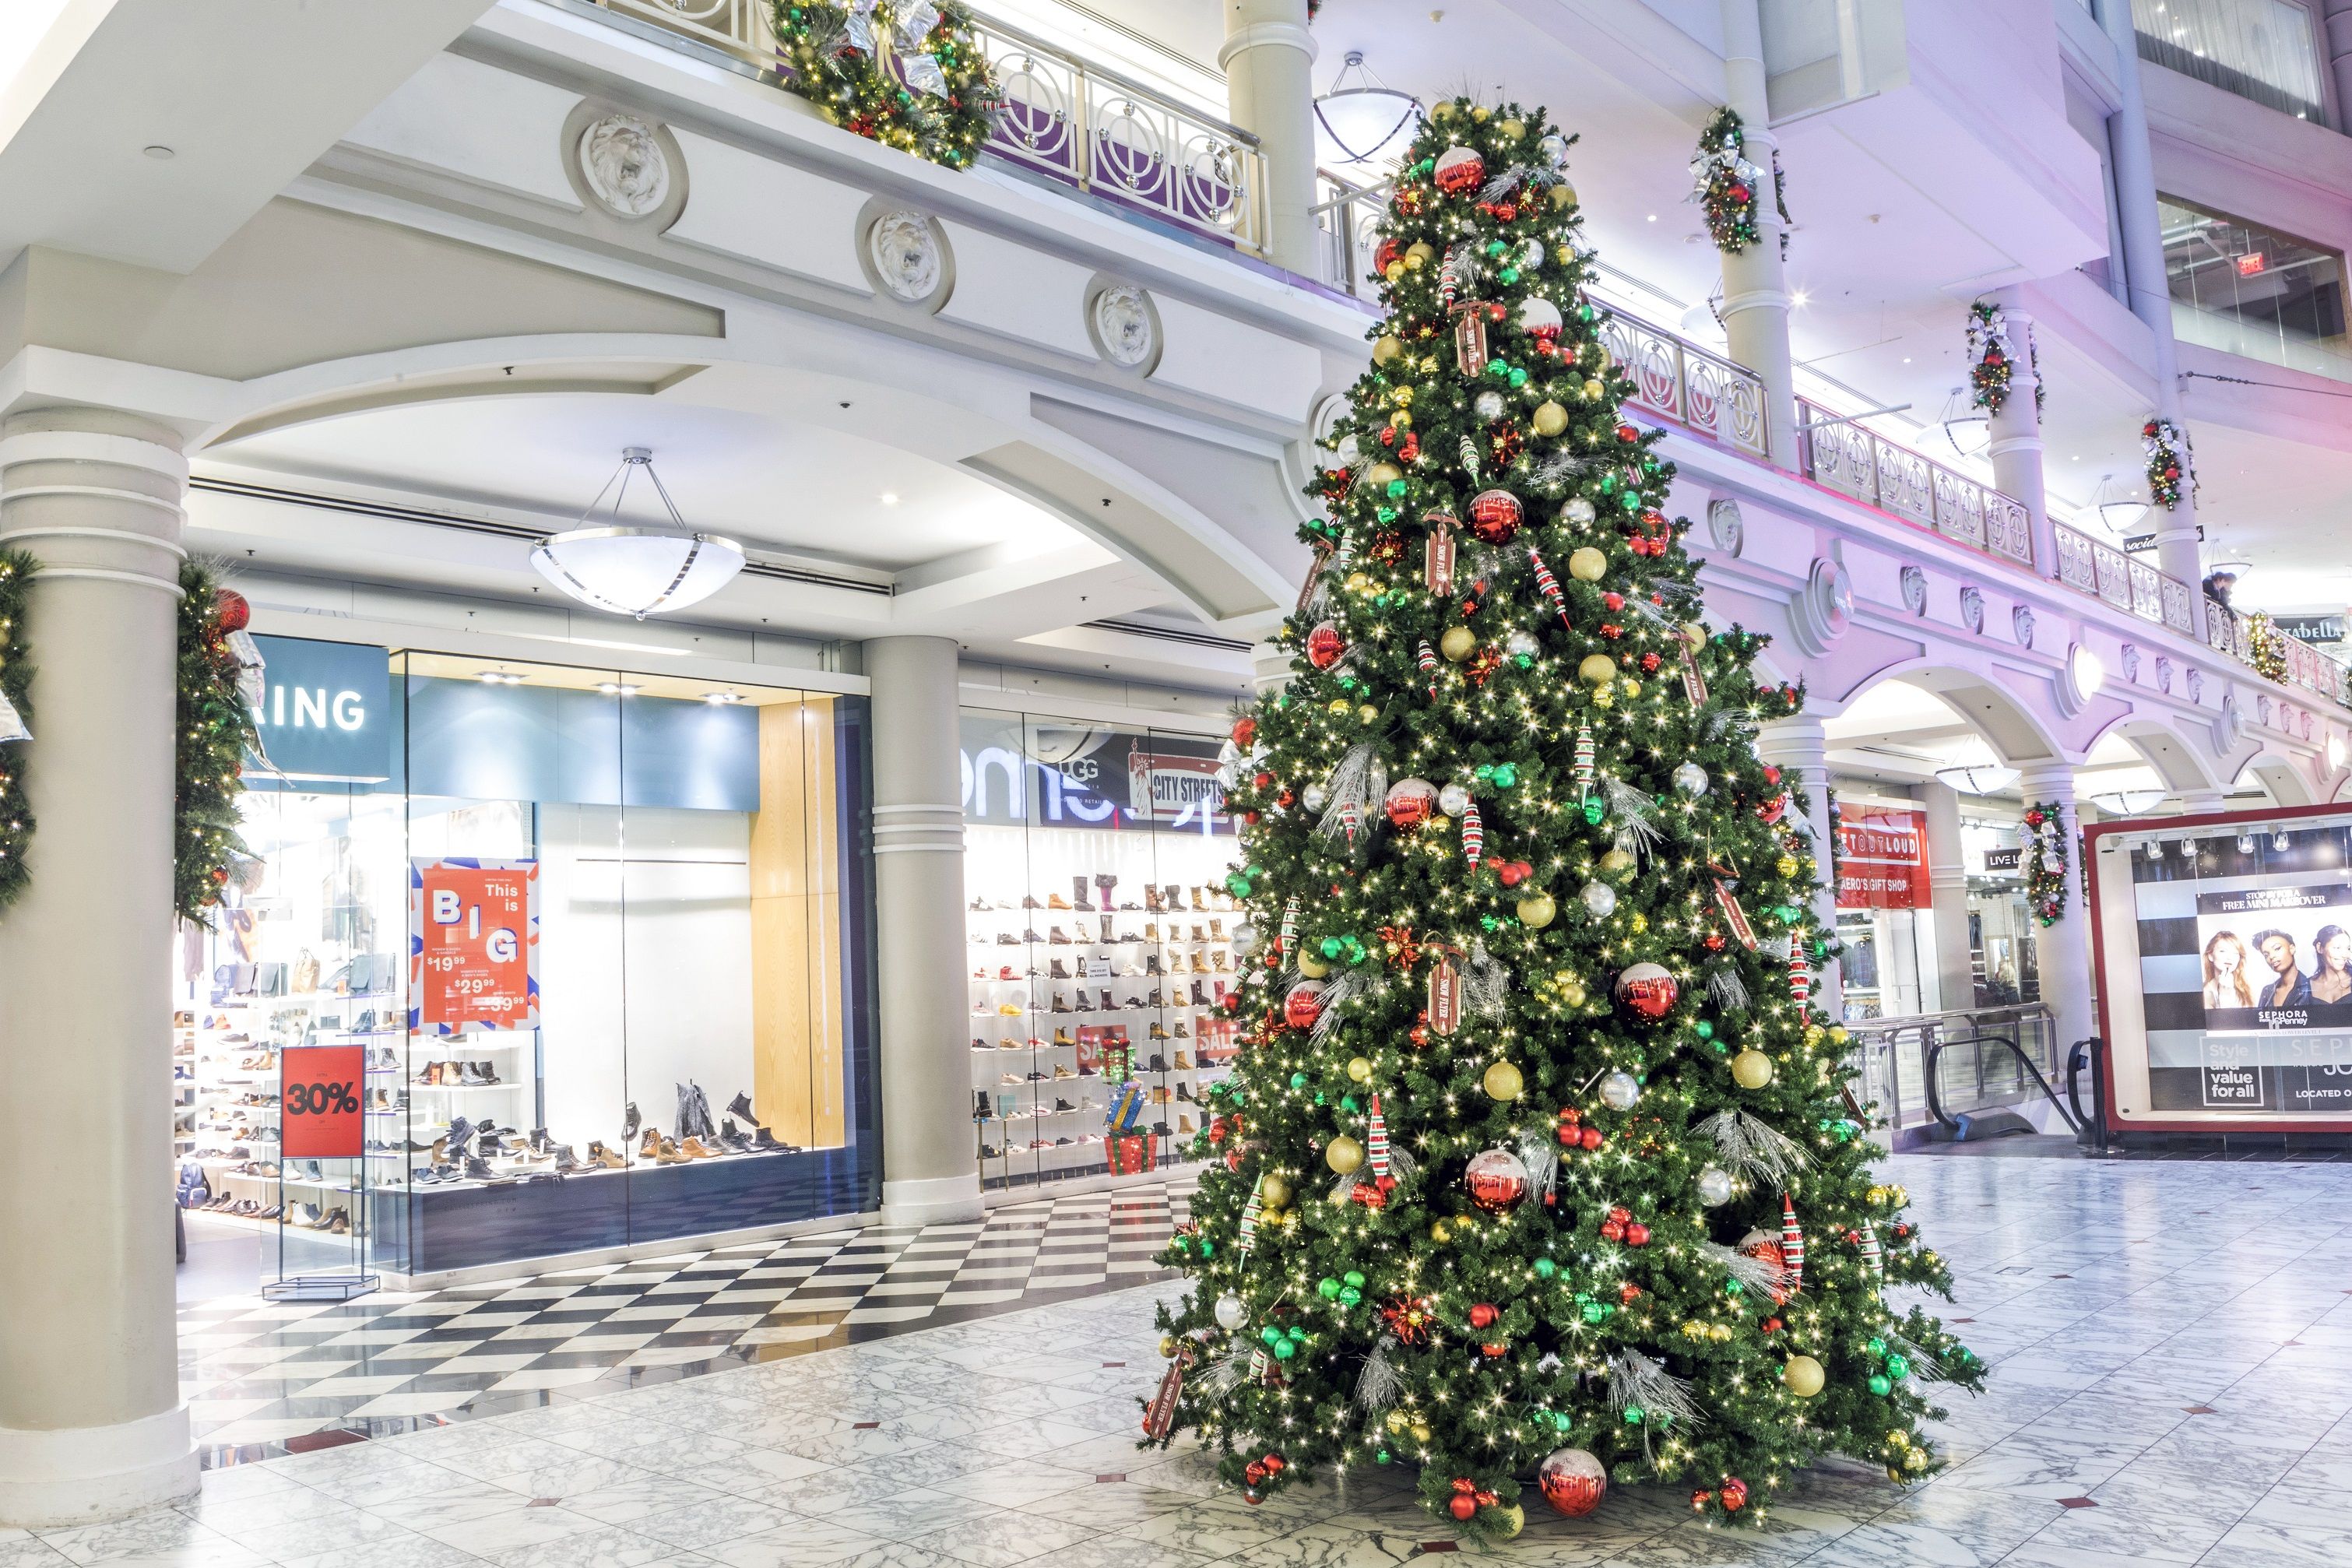 Holiday cheer resonates through the great hall of this shopping center sparking joy and excitement for visitors big and small.